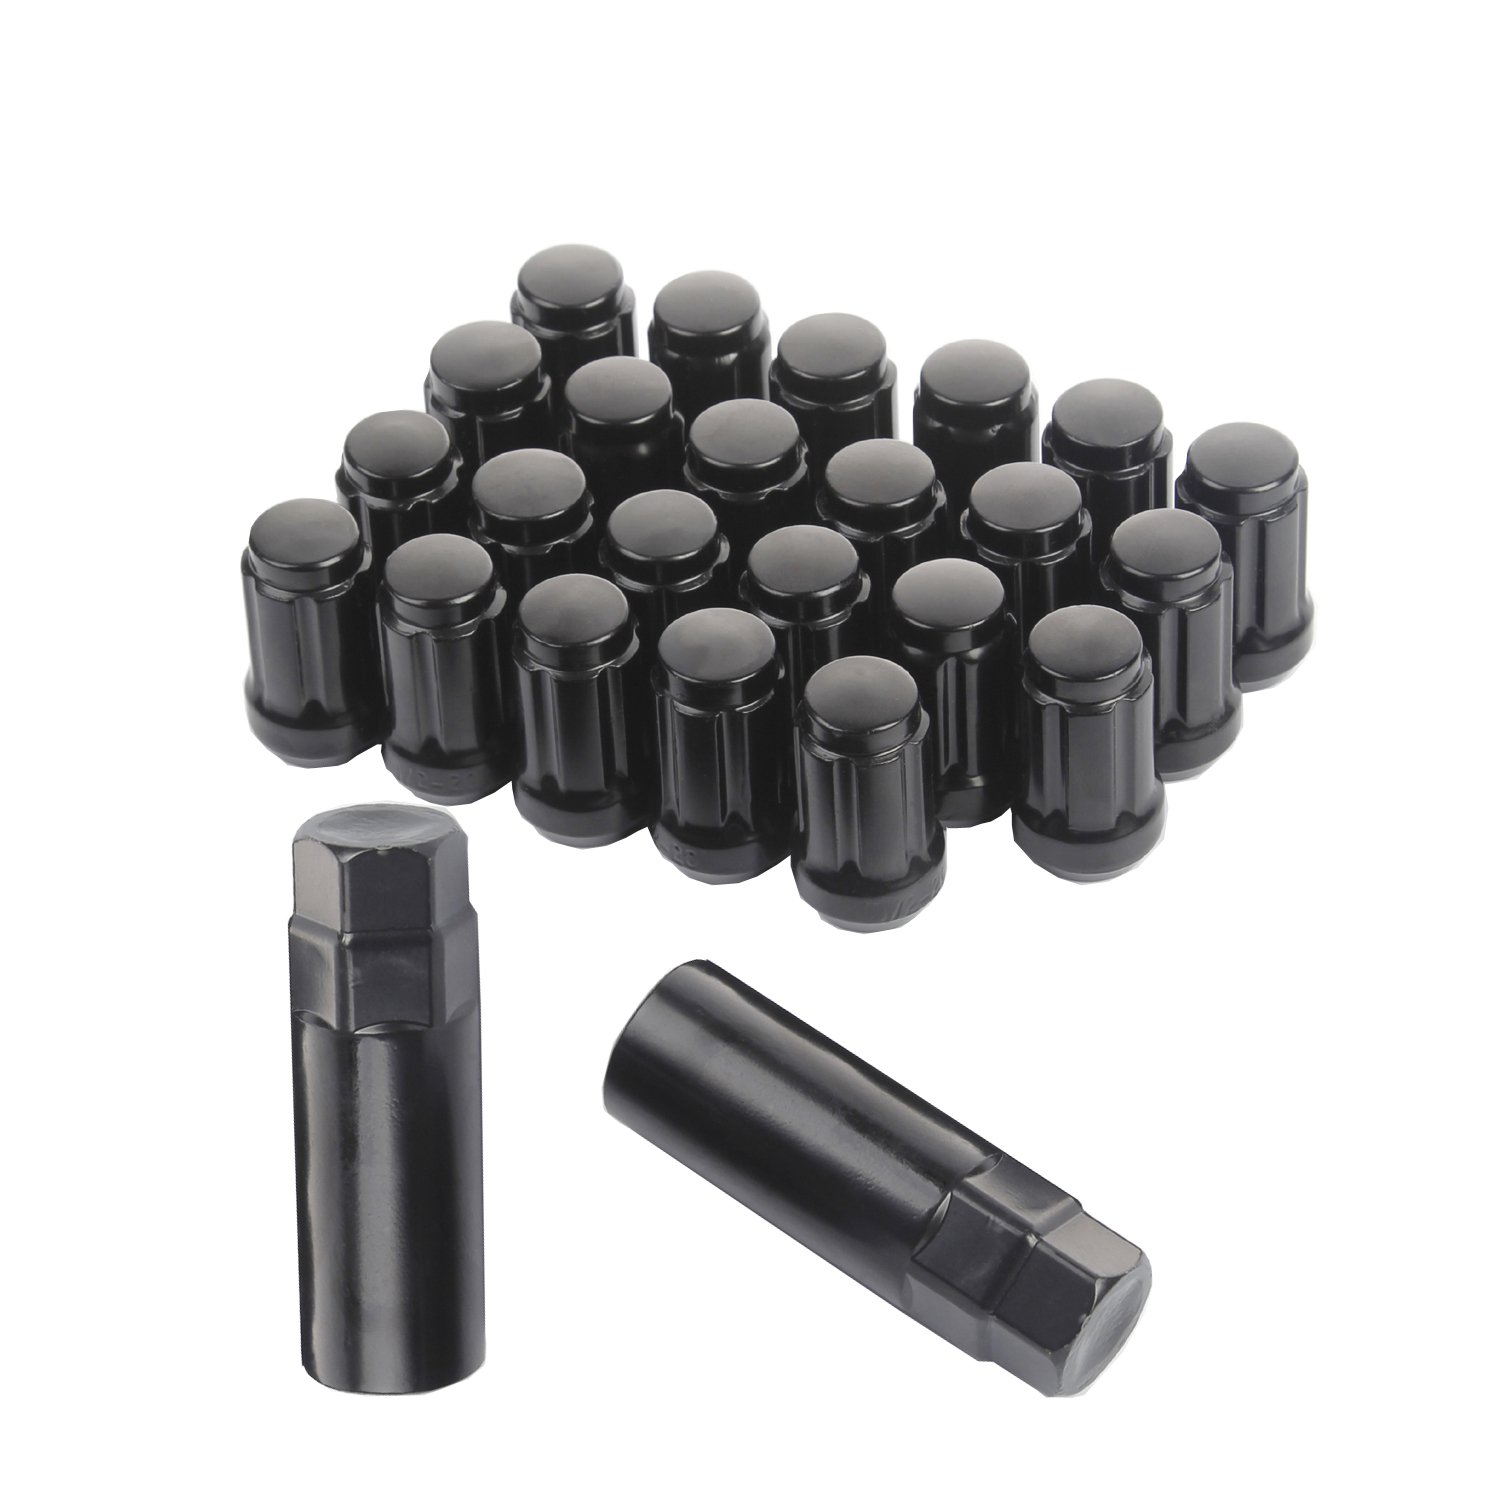 KV Set of 23pcs Black Spline Lug Nuts Closed End 1.38'' 35mm Tall 1/2-20 with 2 Keys fit Jeep Honda Ford Acura Chevrolet